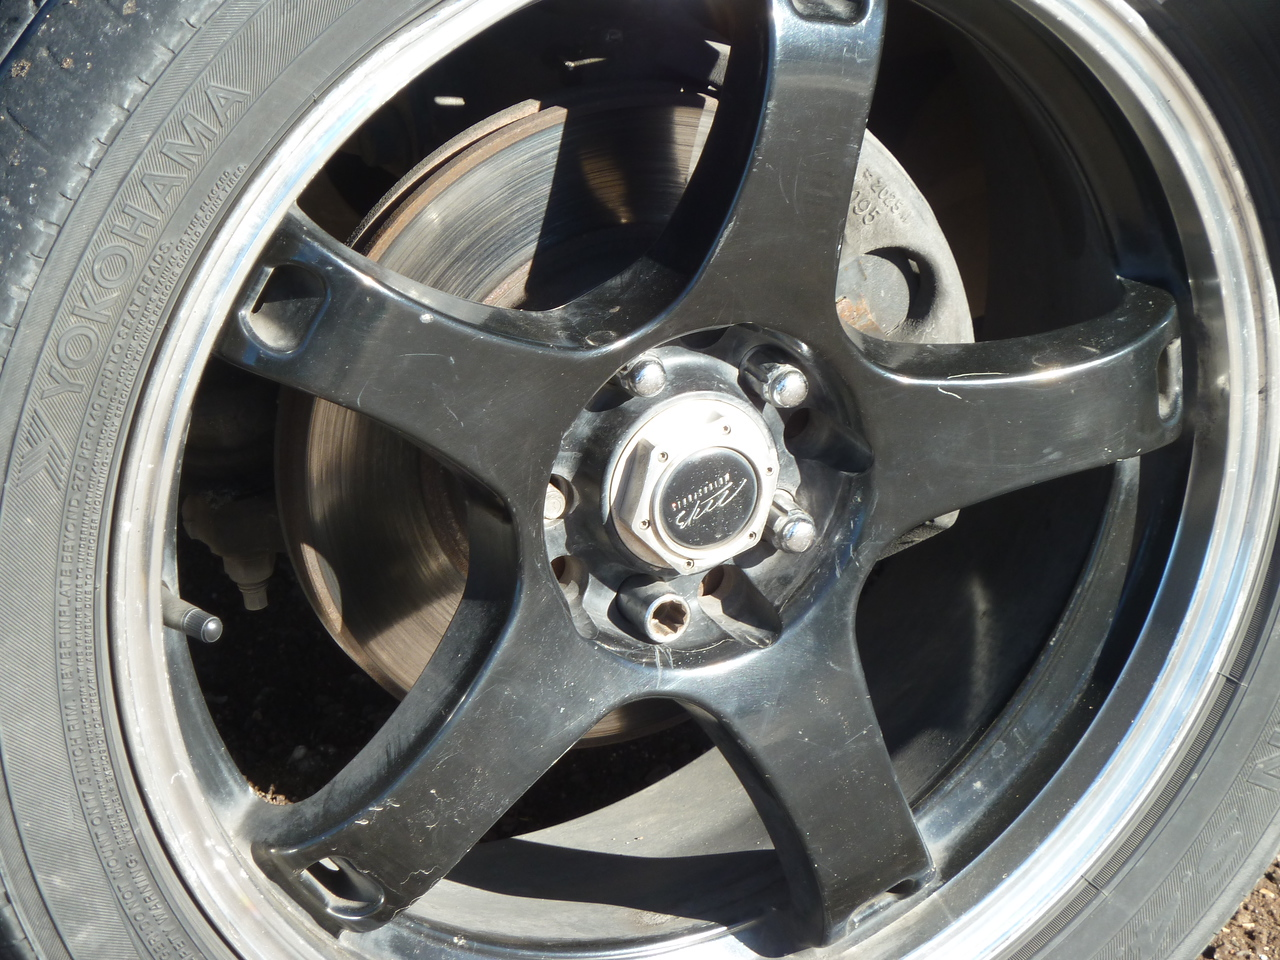 Welcome to Mexico- who needs all their lugnuts?